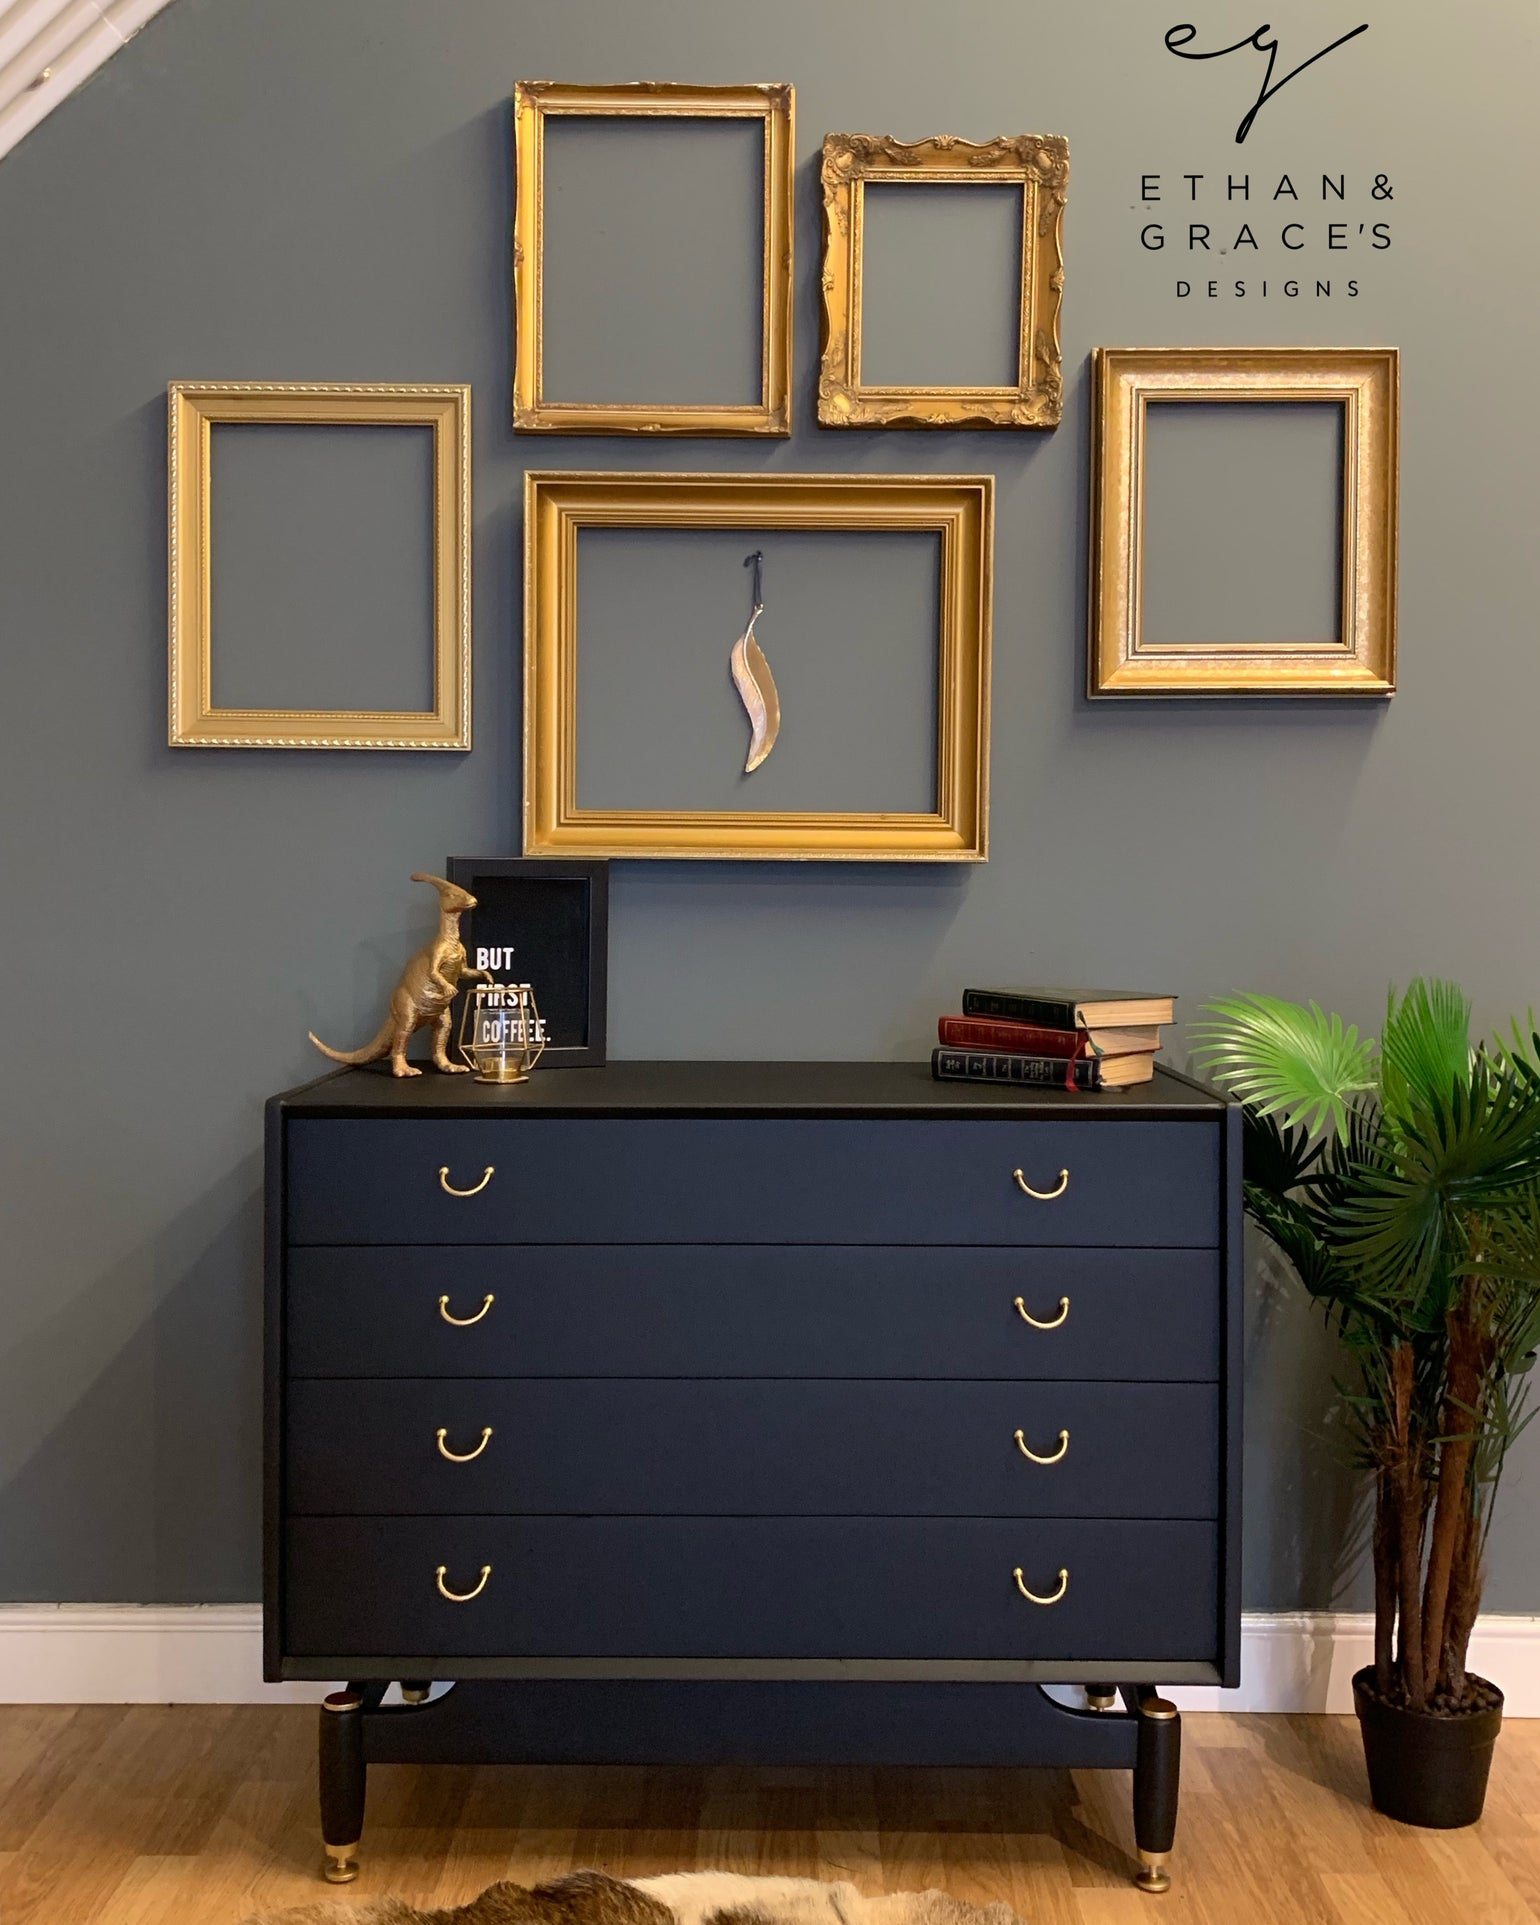 Image of Black & Gold G Plan Tola chest of drawers